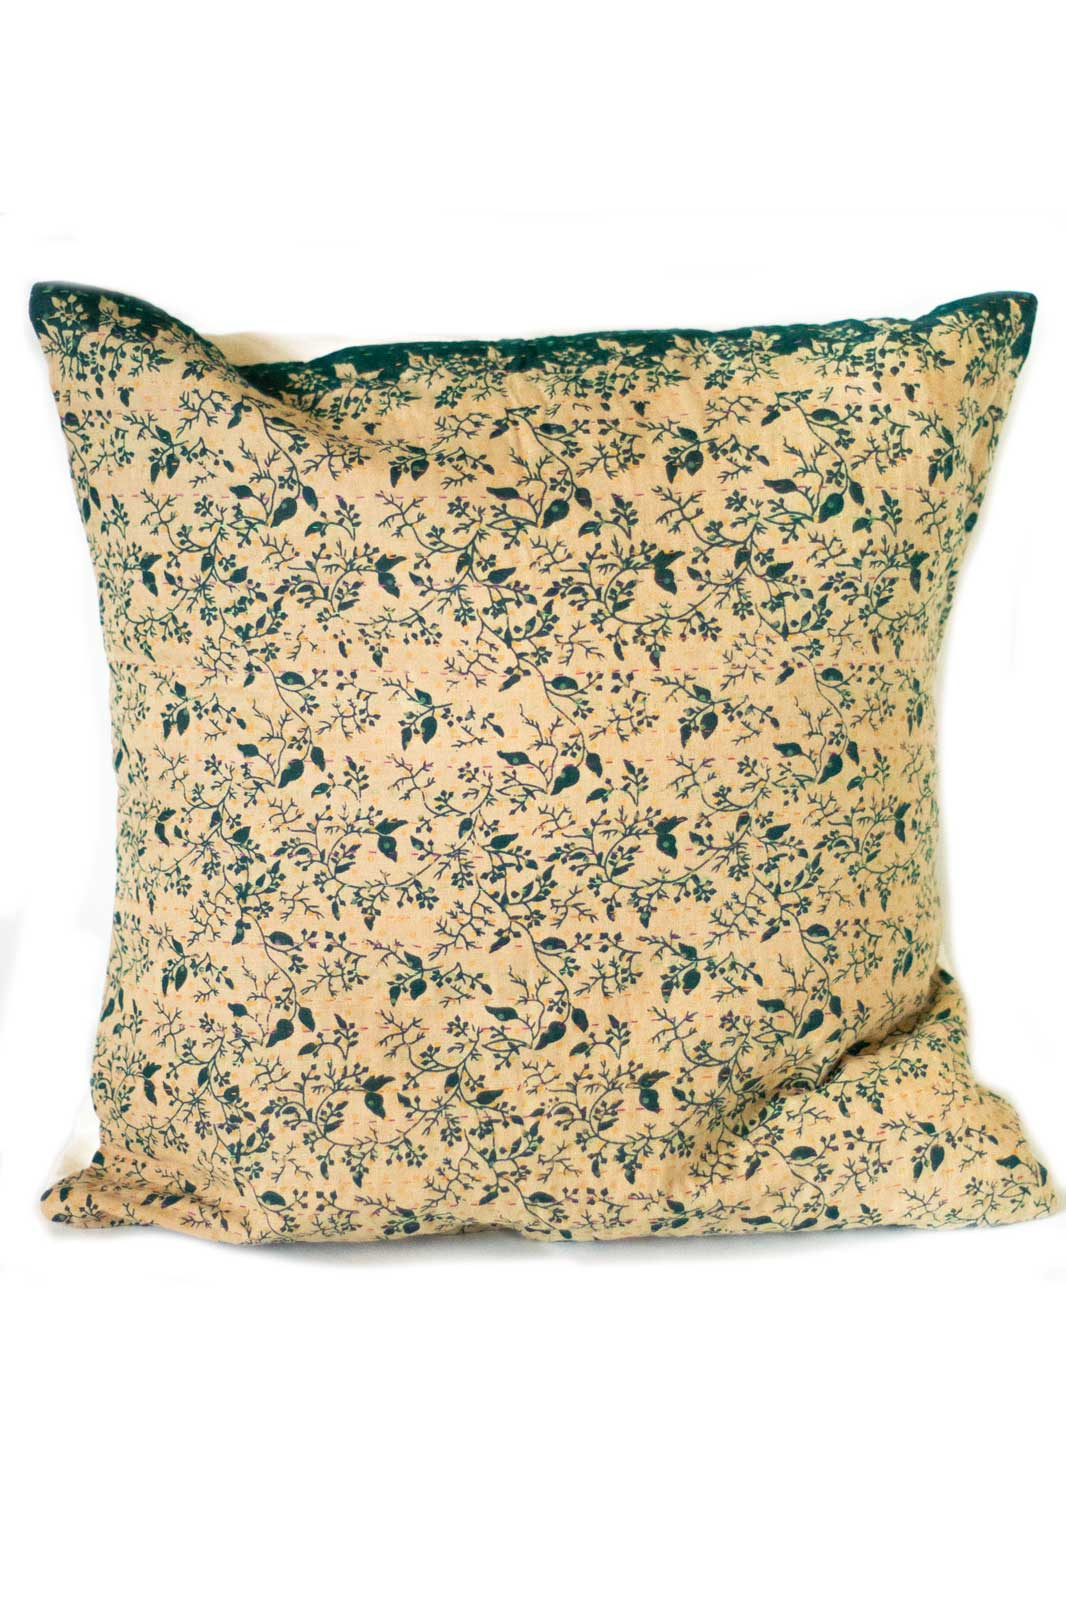 Beauty no. 6 Kantha Pillow Cover